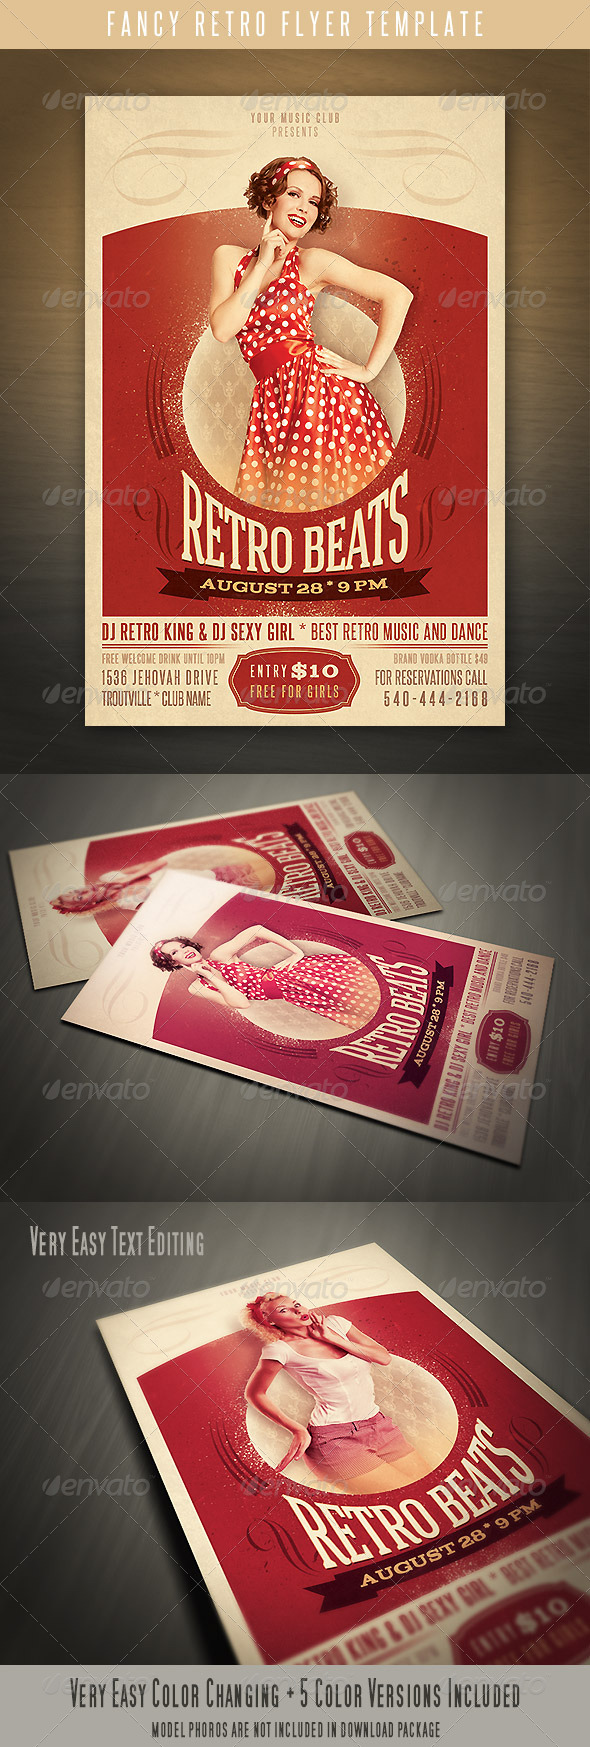 Fancy Retro Flyer - Clubs & Parties Events